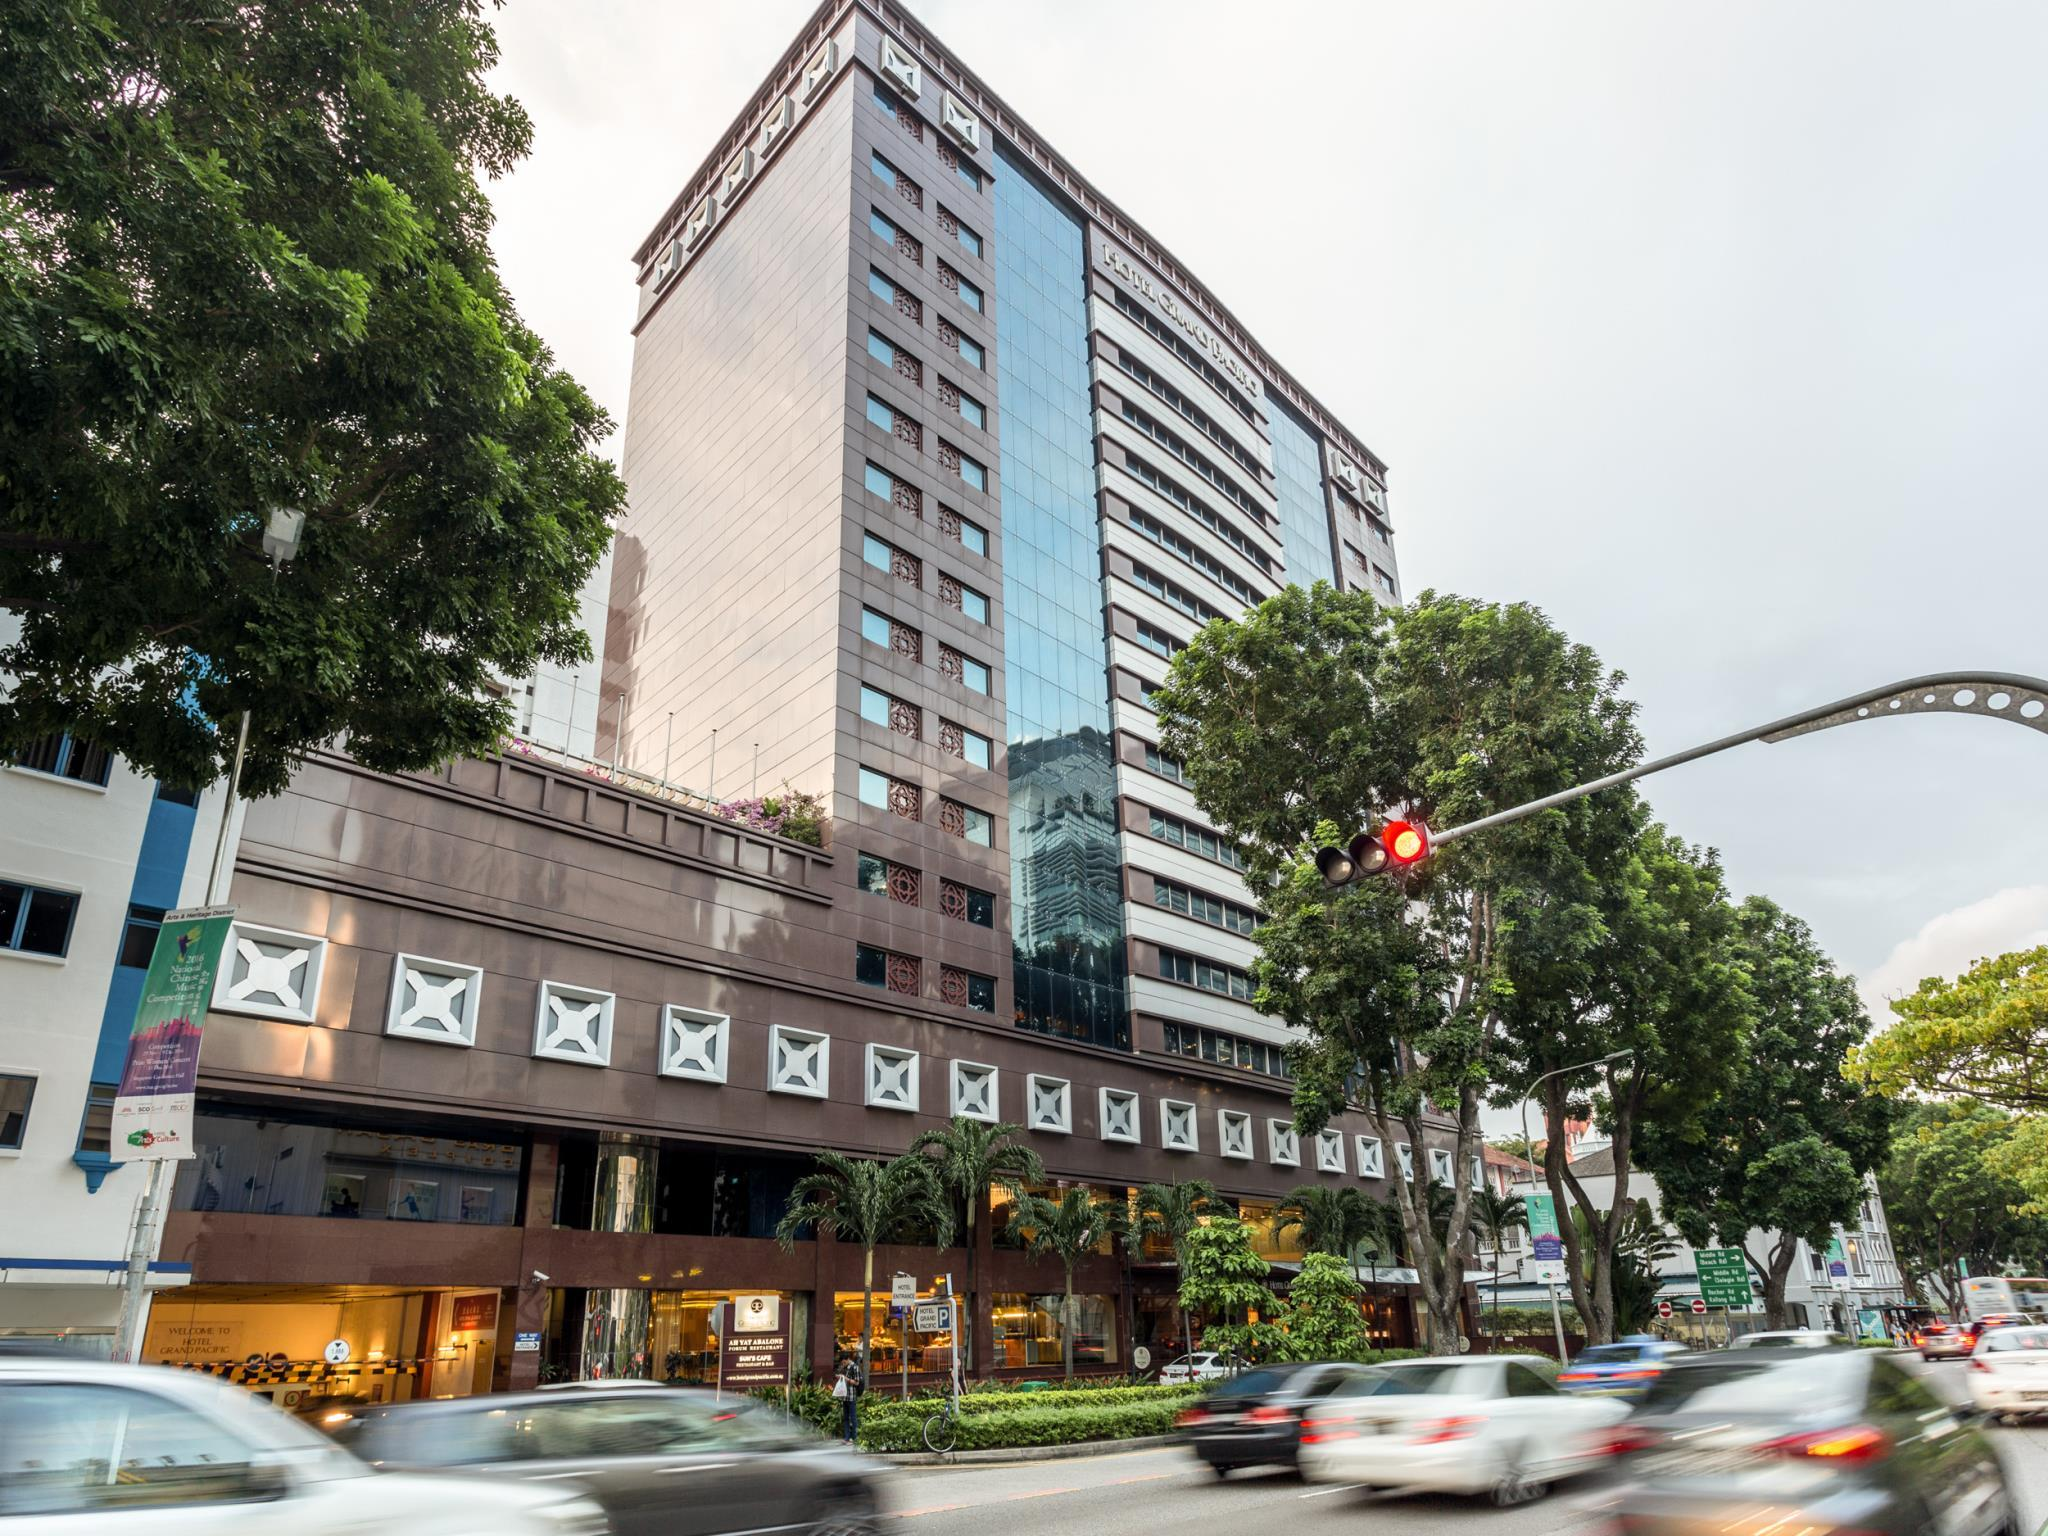 Hotel Grand Pacific Bugis Singapore Singapore Great